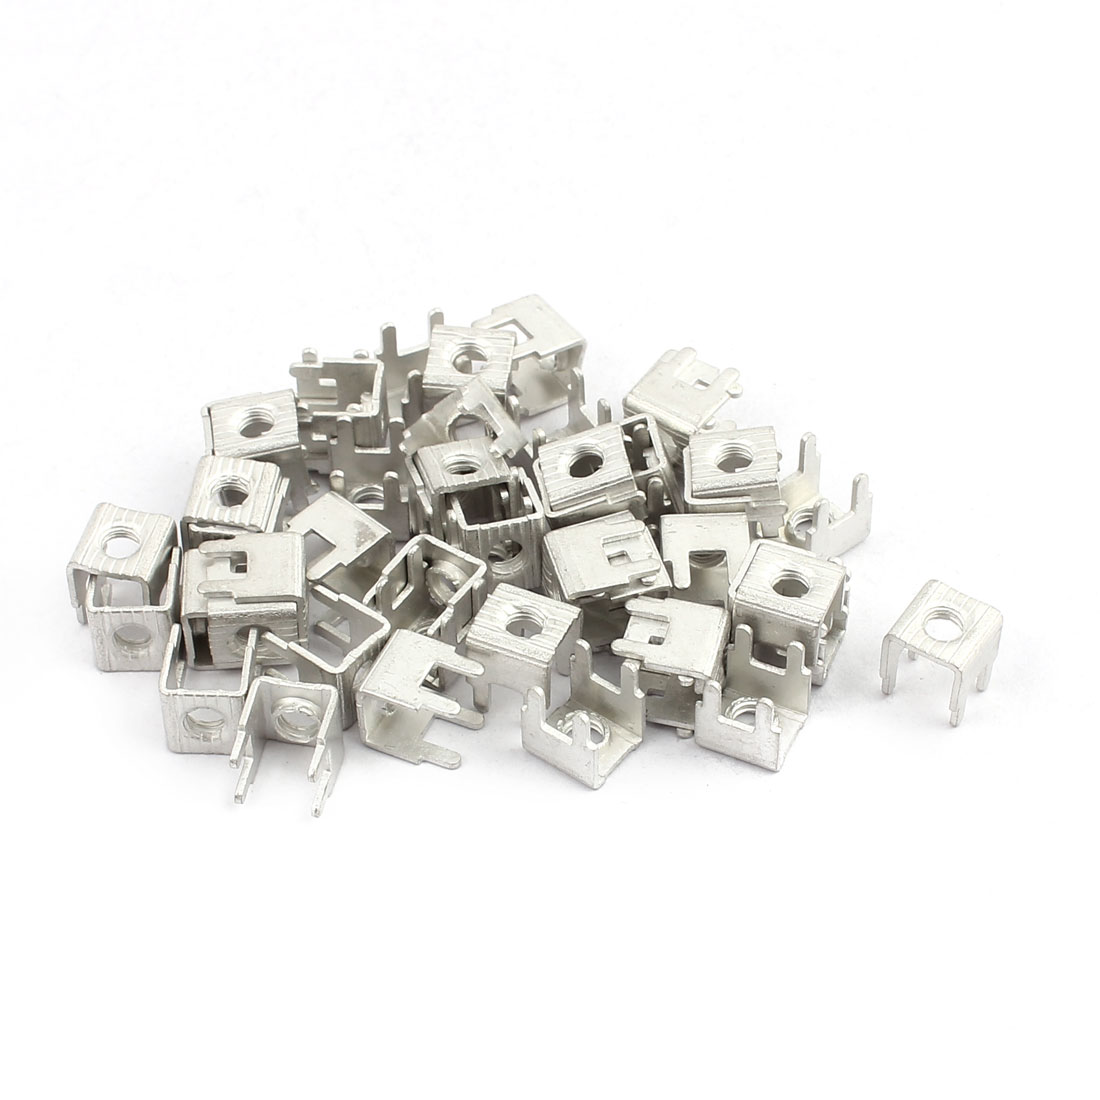 50pcs PCB-11 M4 Thread PCB Soldering Snap in Screw Terminal Block Terminals Only